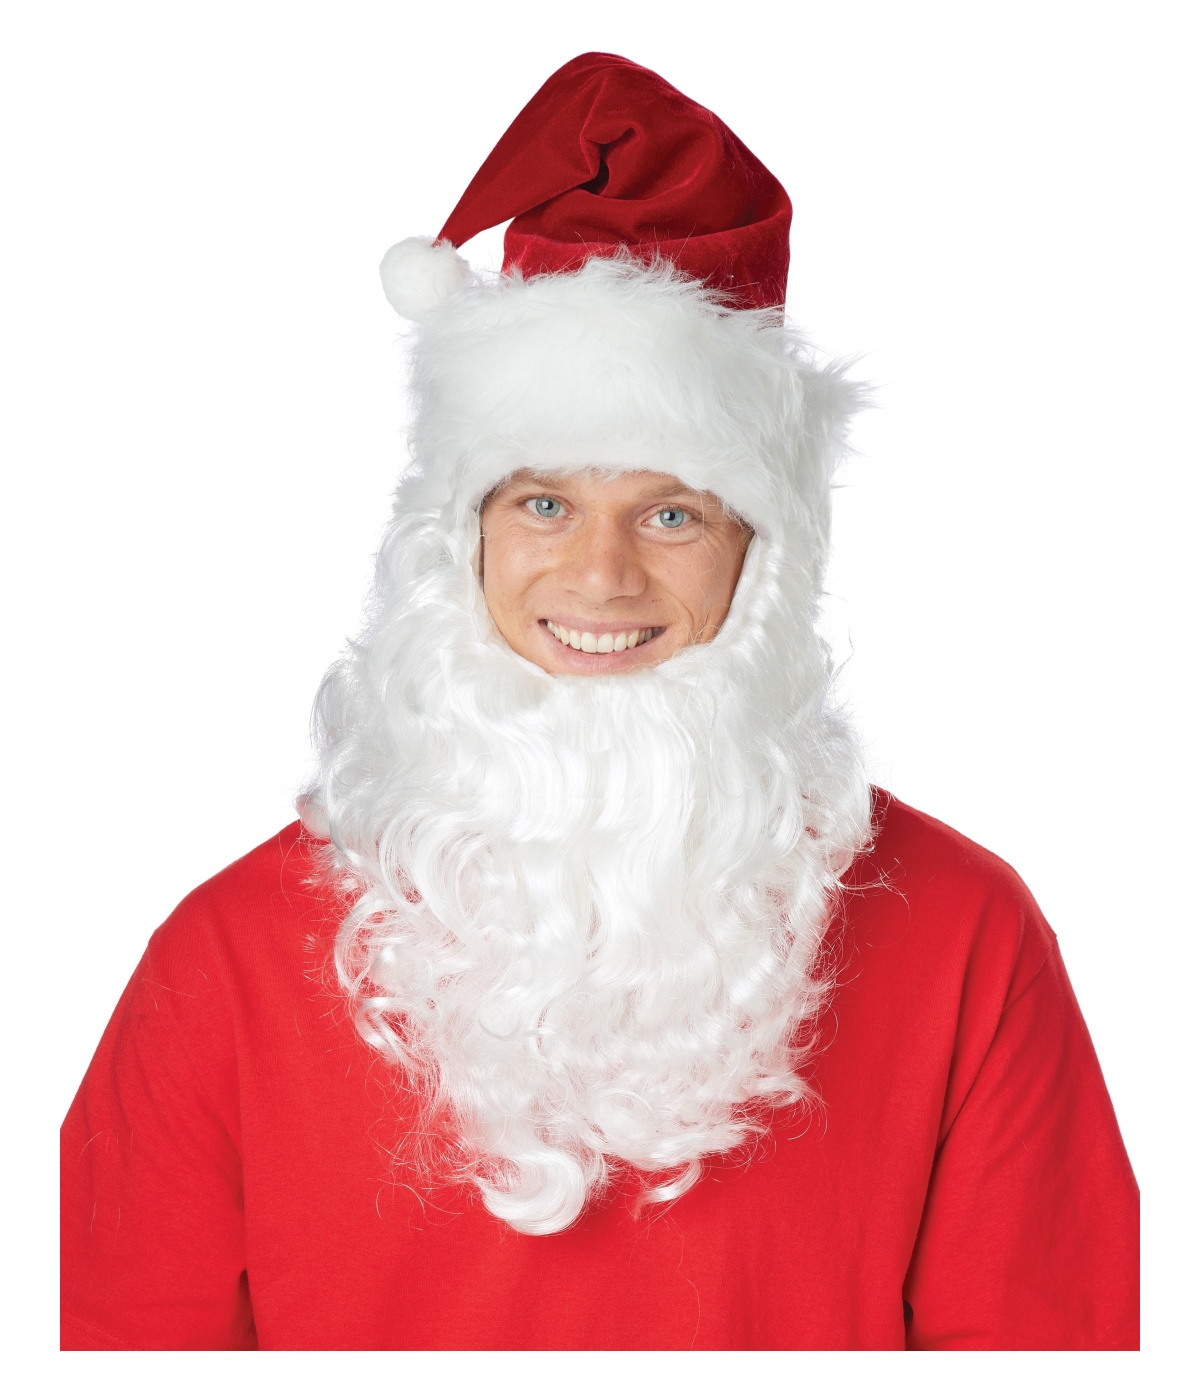 c1e8f08d4f7 Santa Claus Getup Hat with Attached Beard Set - Hats